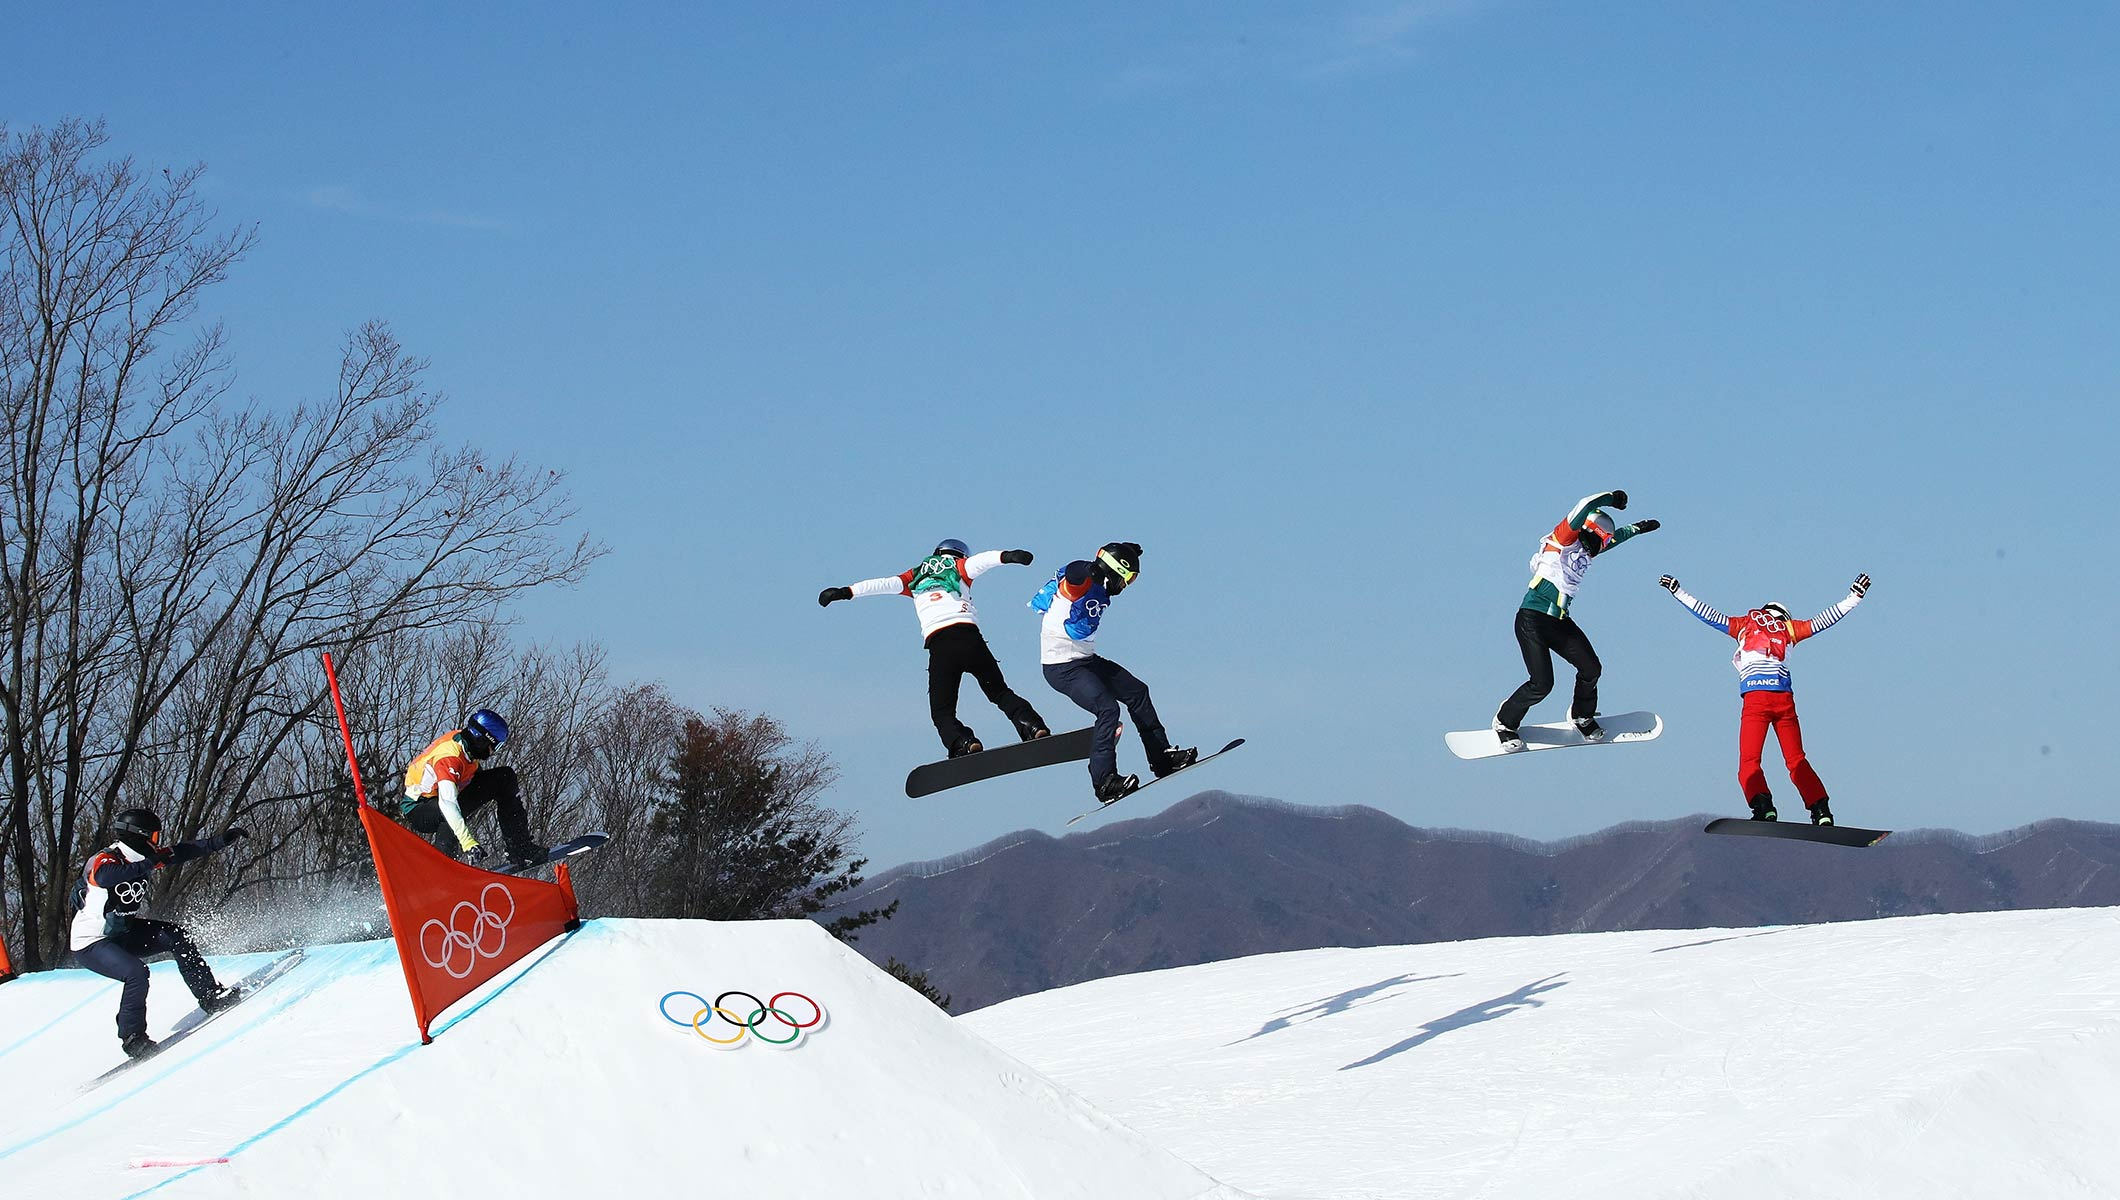 olympic snowboarding winter olympic sport